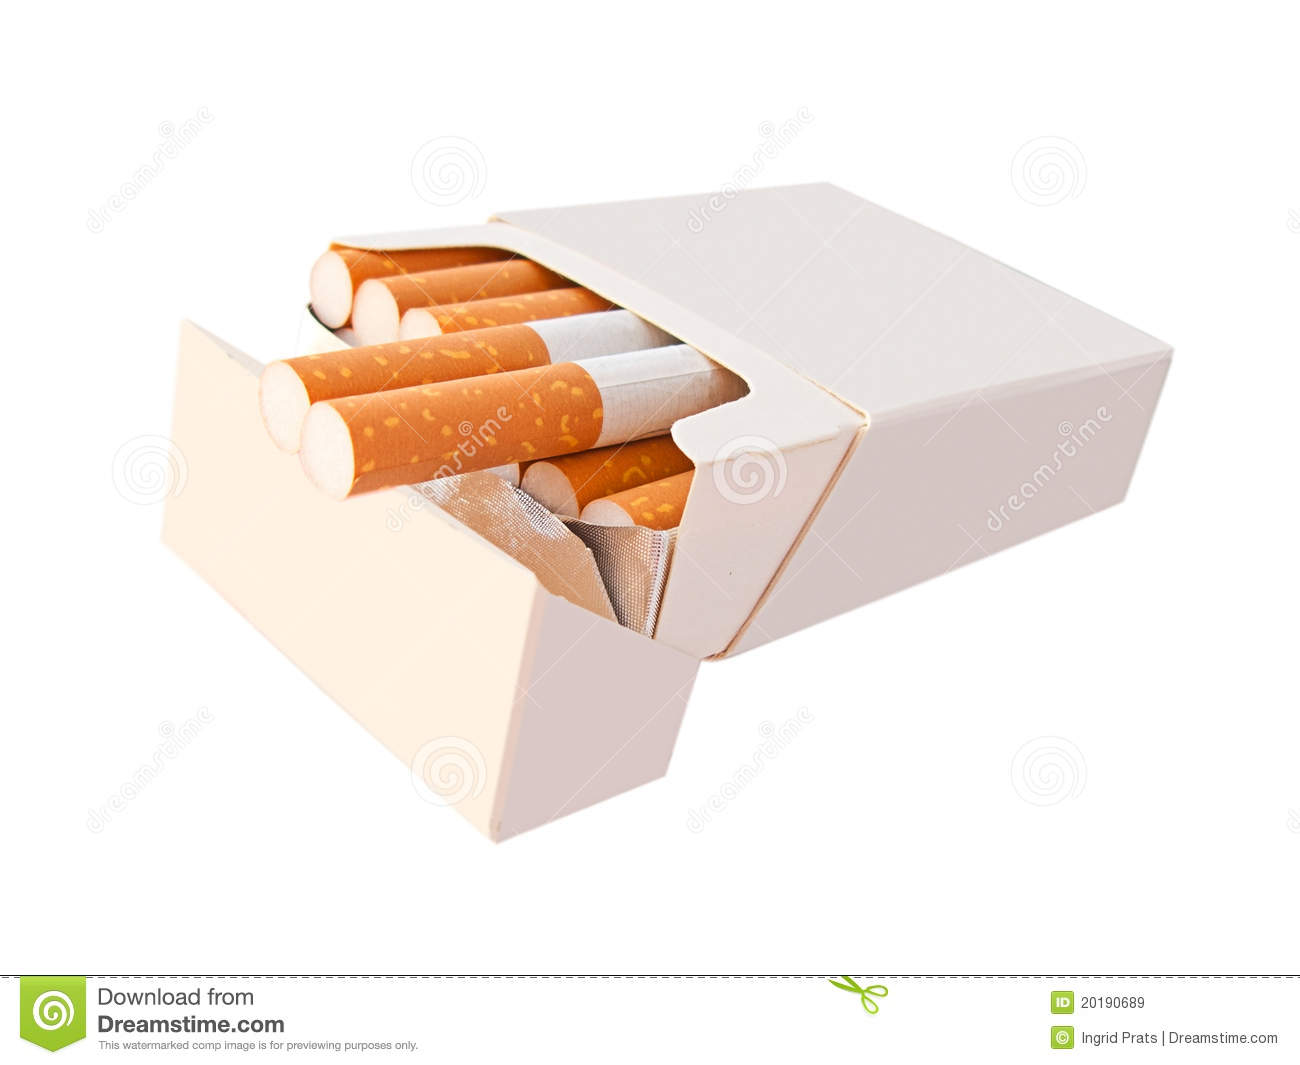 cigarettes cost too much